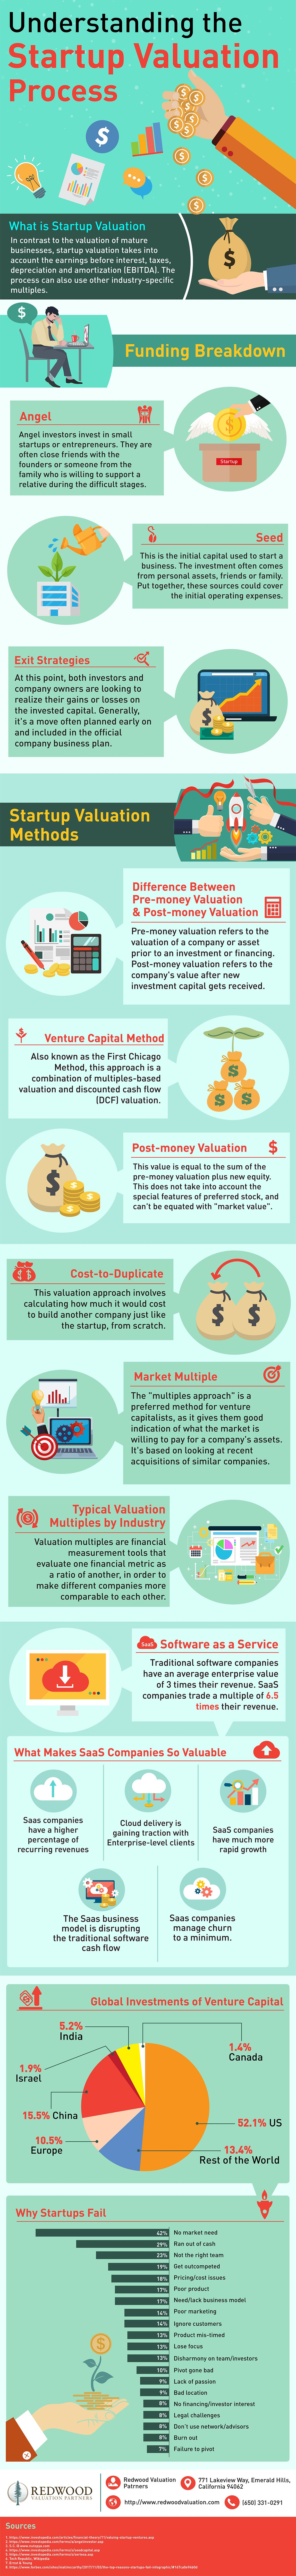 Startup Valuation Process